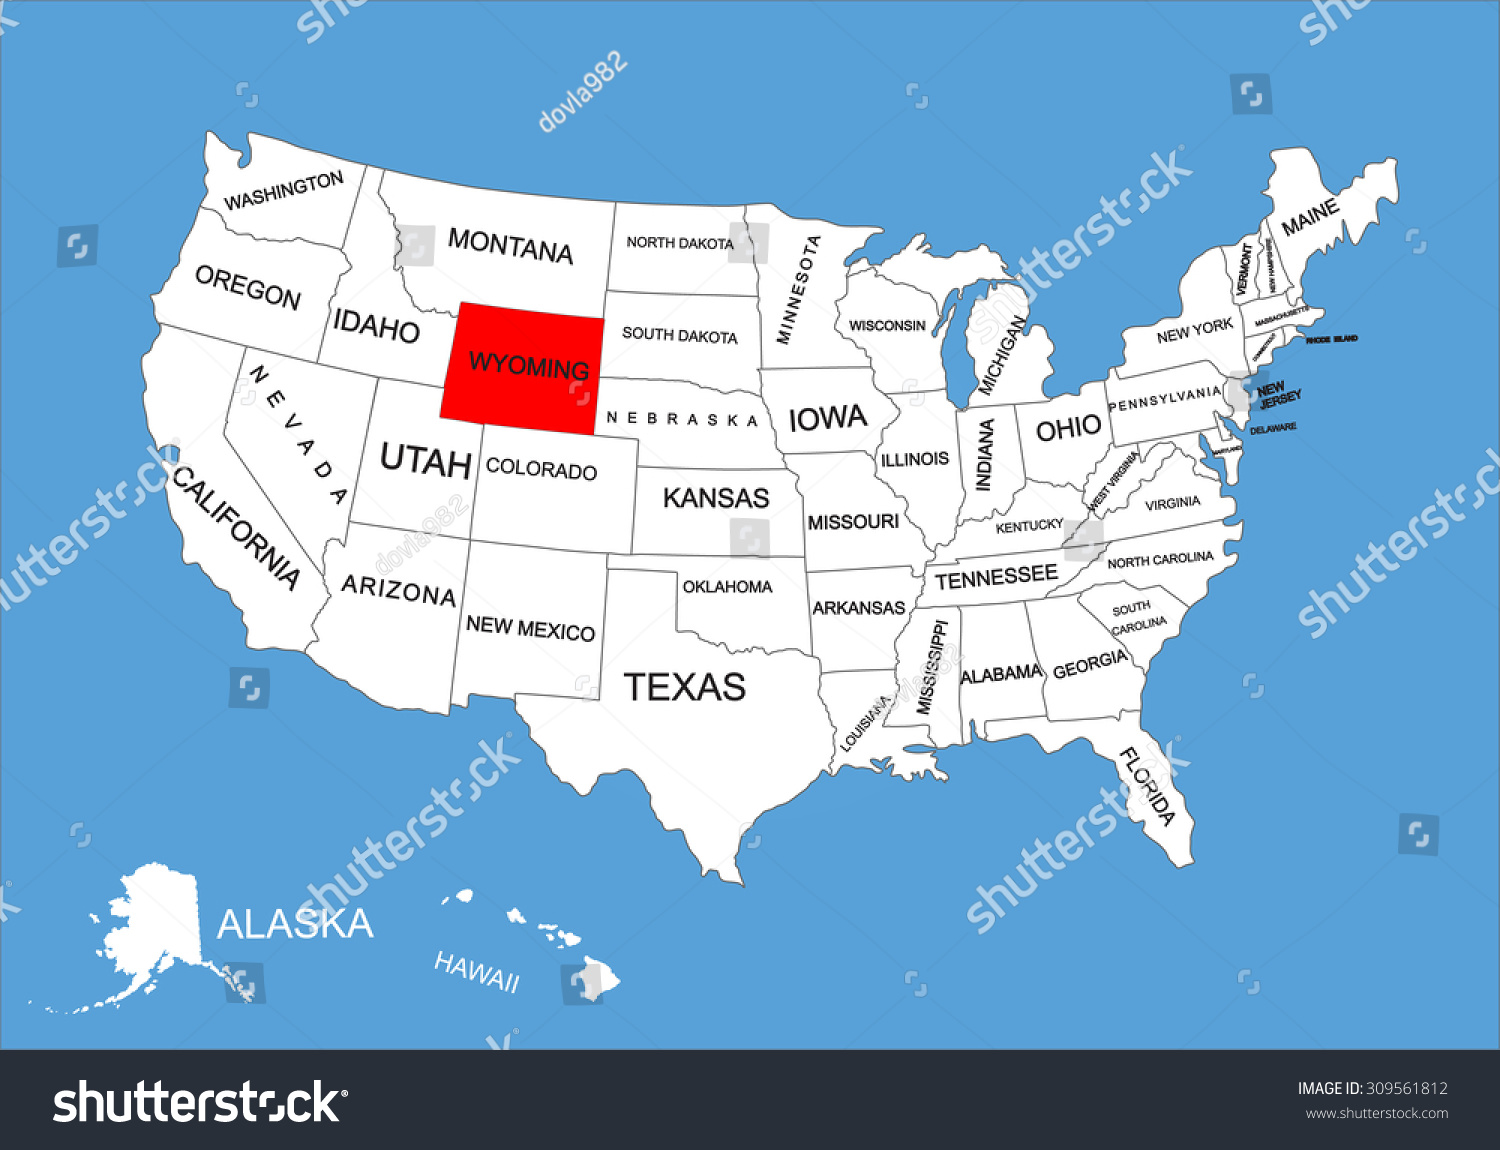 wyoming on the us map Wyoming State Usa Vector Map Isolated Stock Vector Royalty Free wyoming on the us map